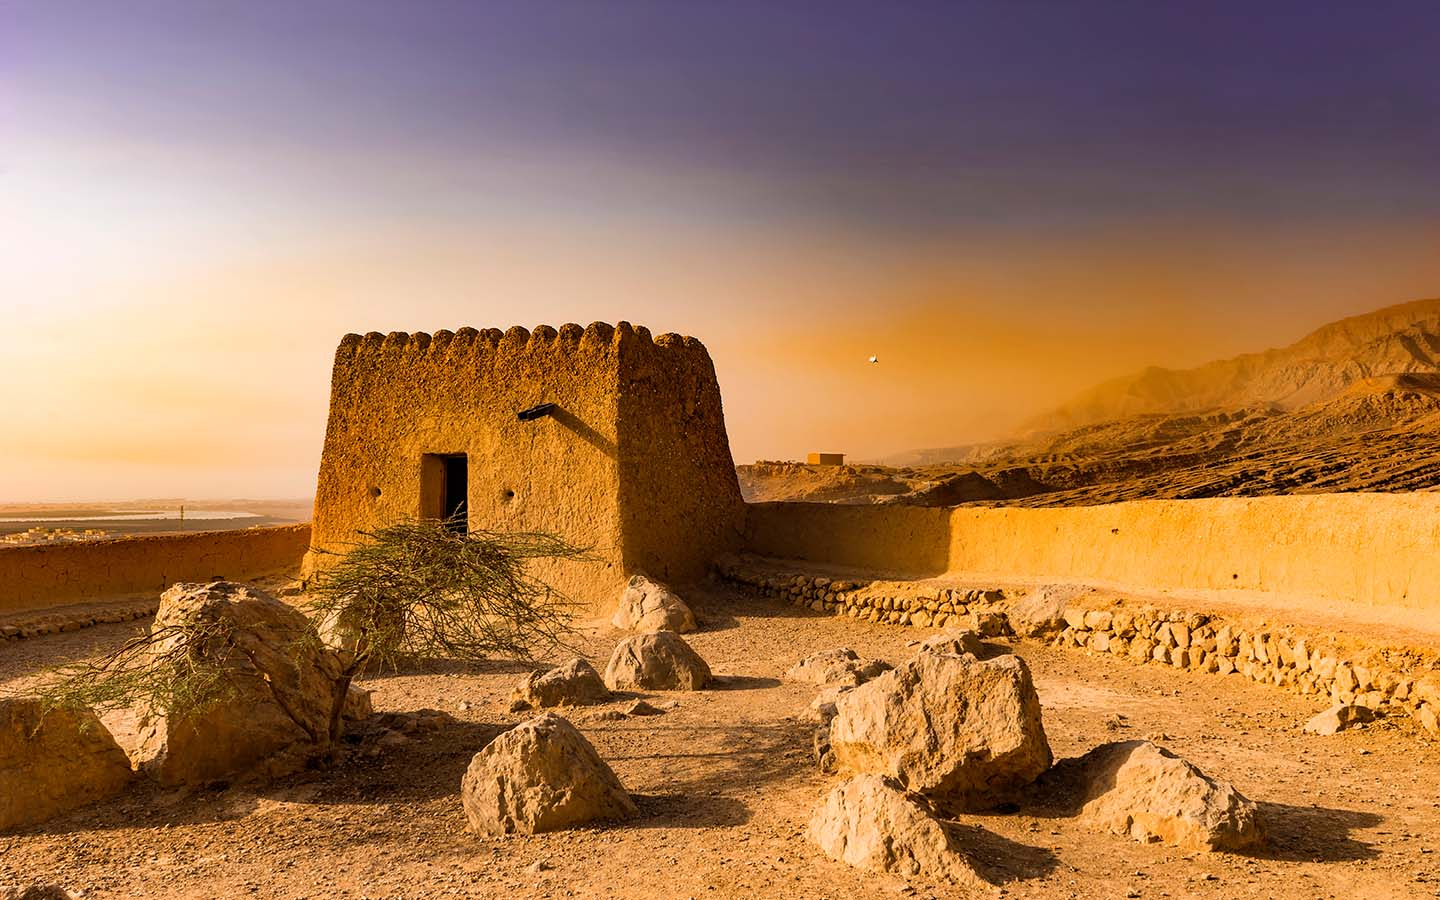 The Al Dhayah Fort in Ras Al Khaimah